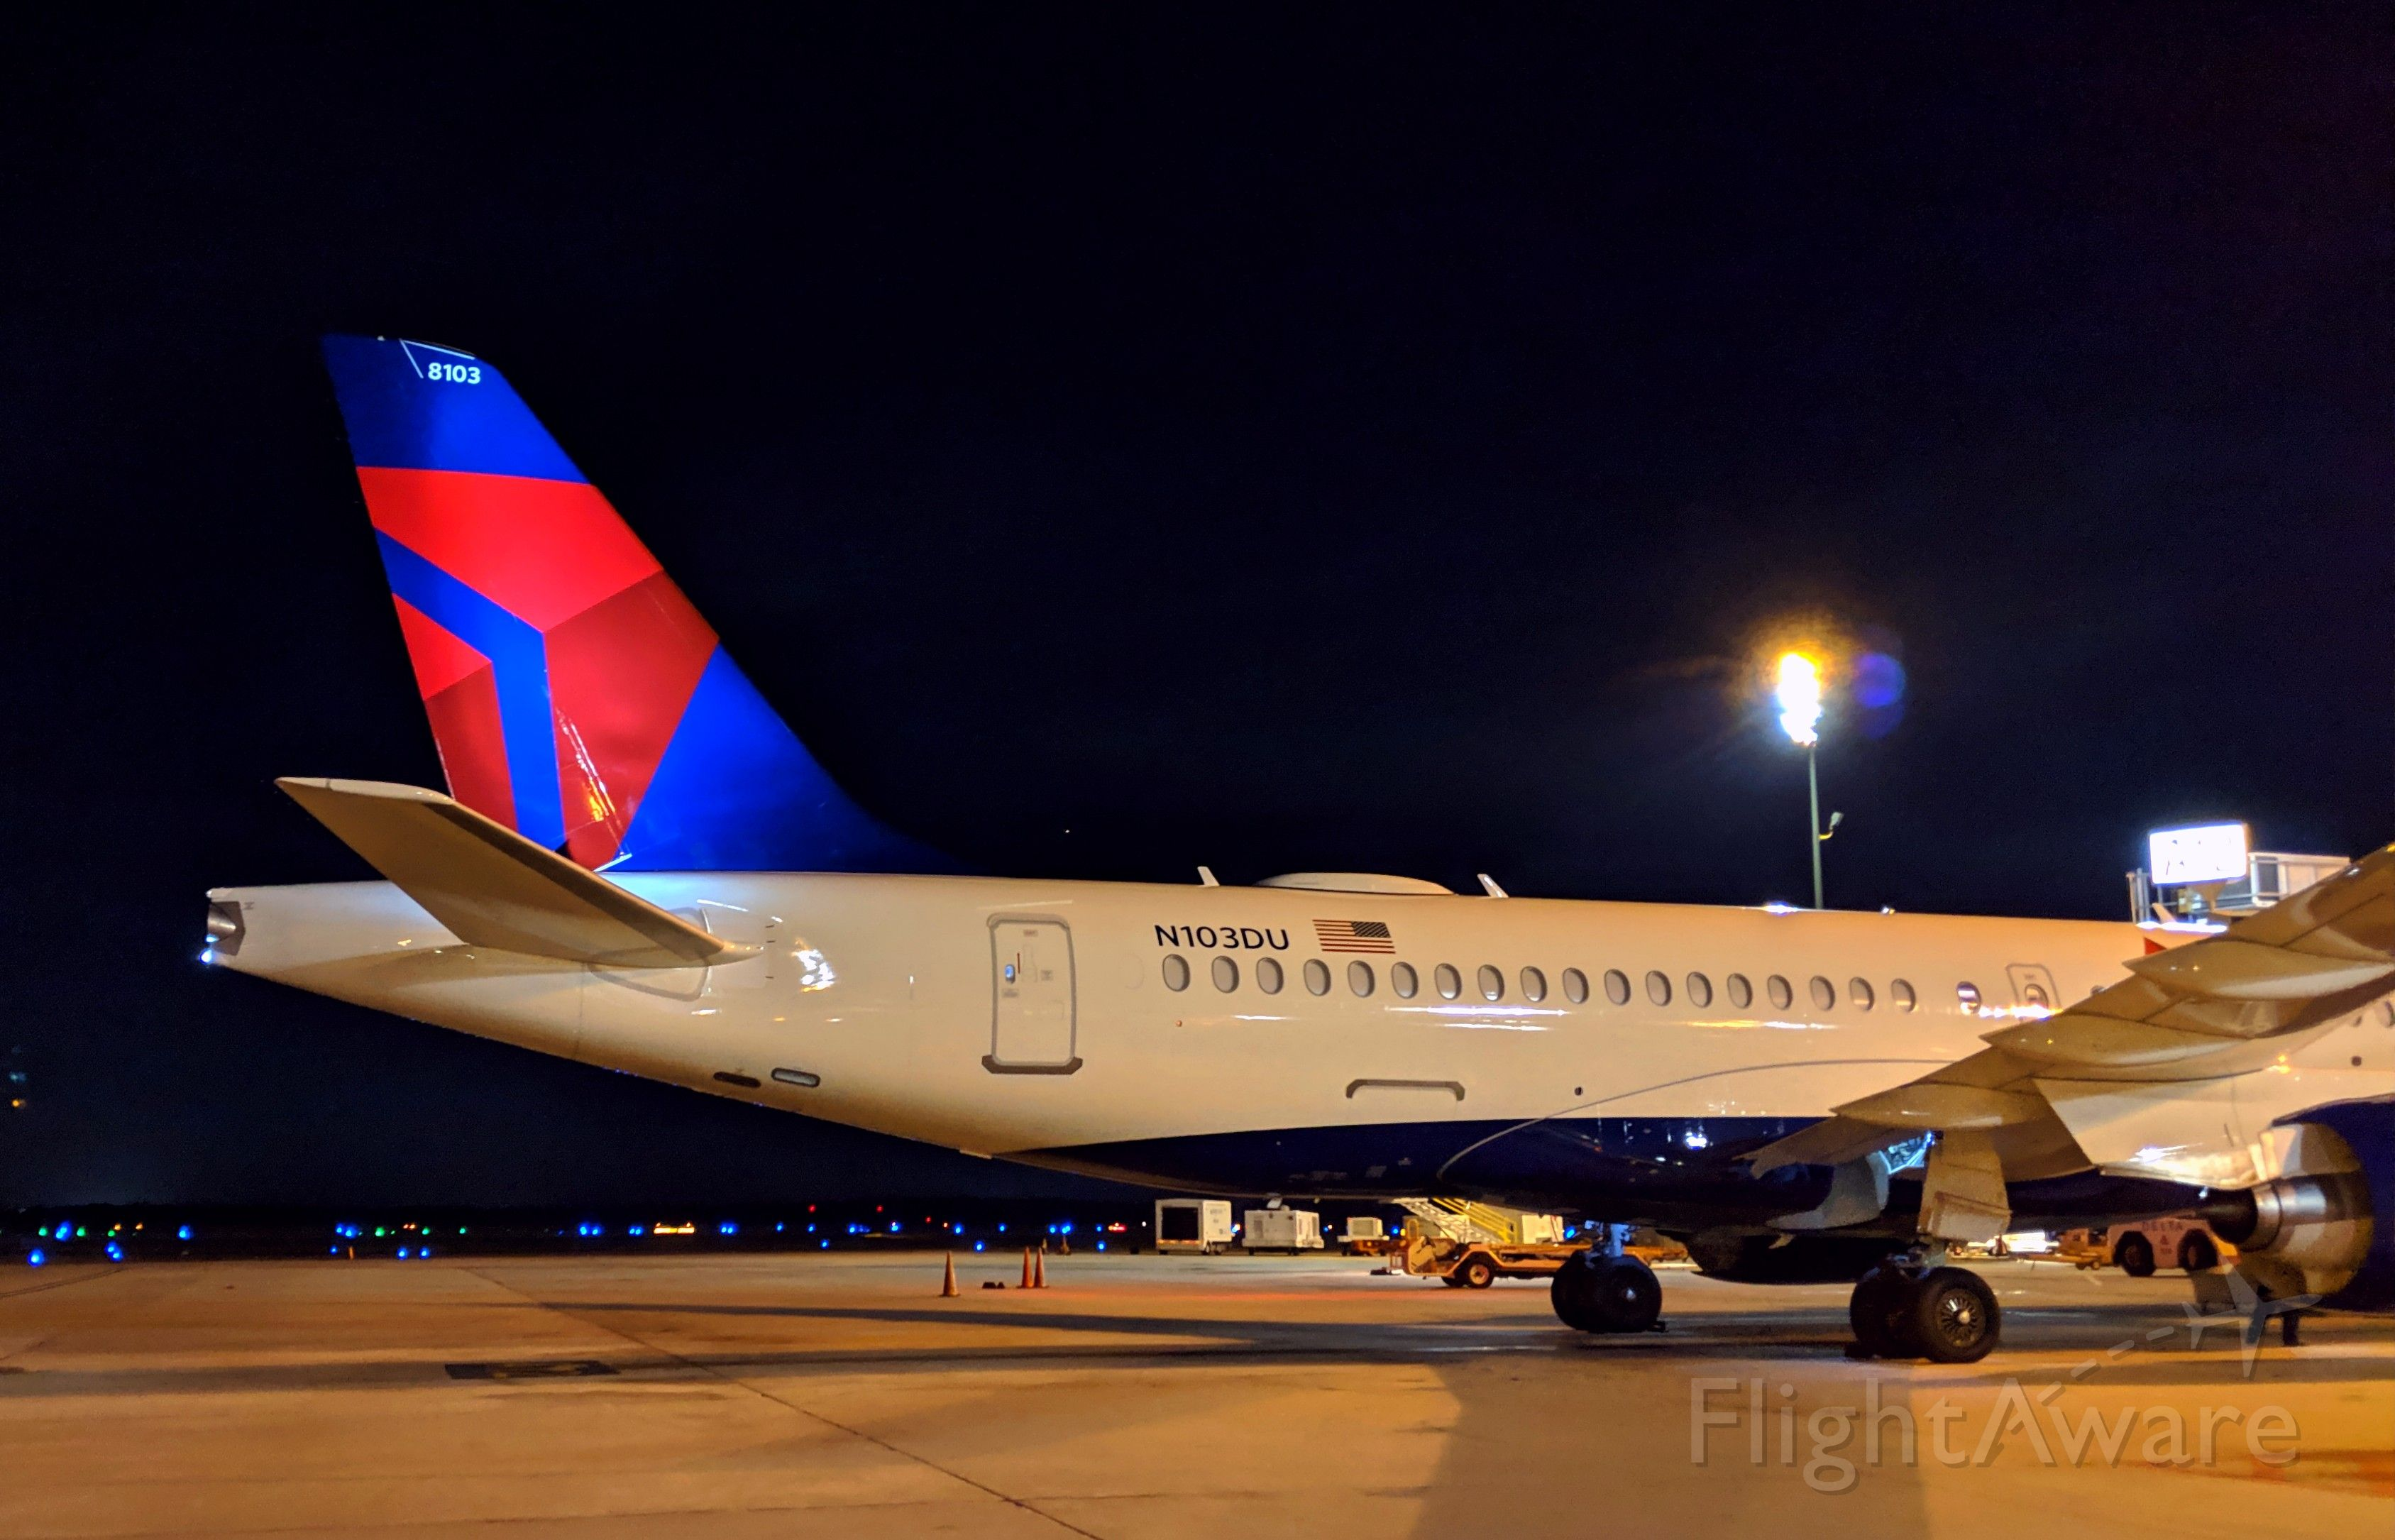 N103DU — - first A220 ever to arrive at George Bush Intercontinental.